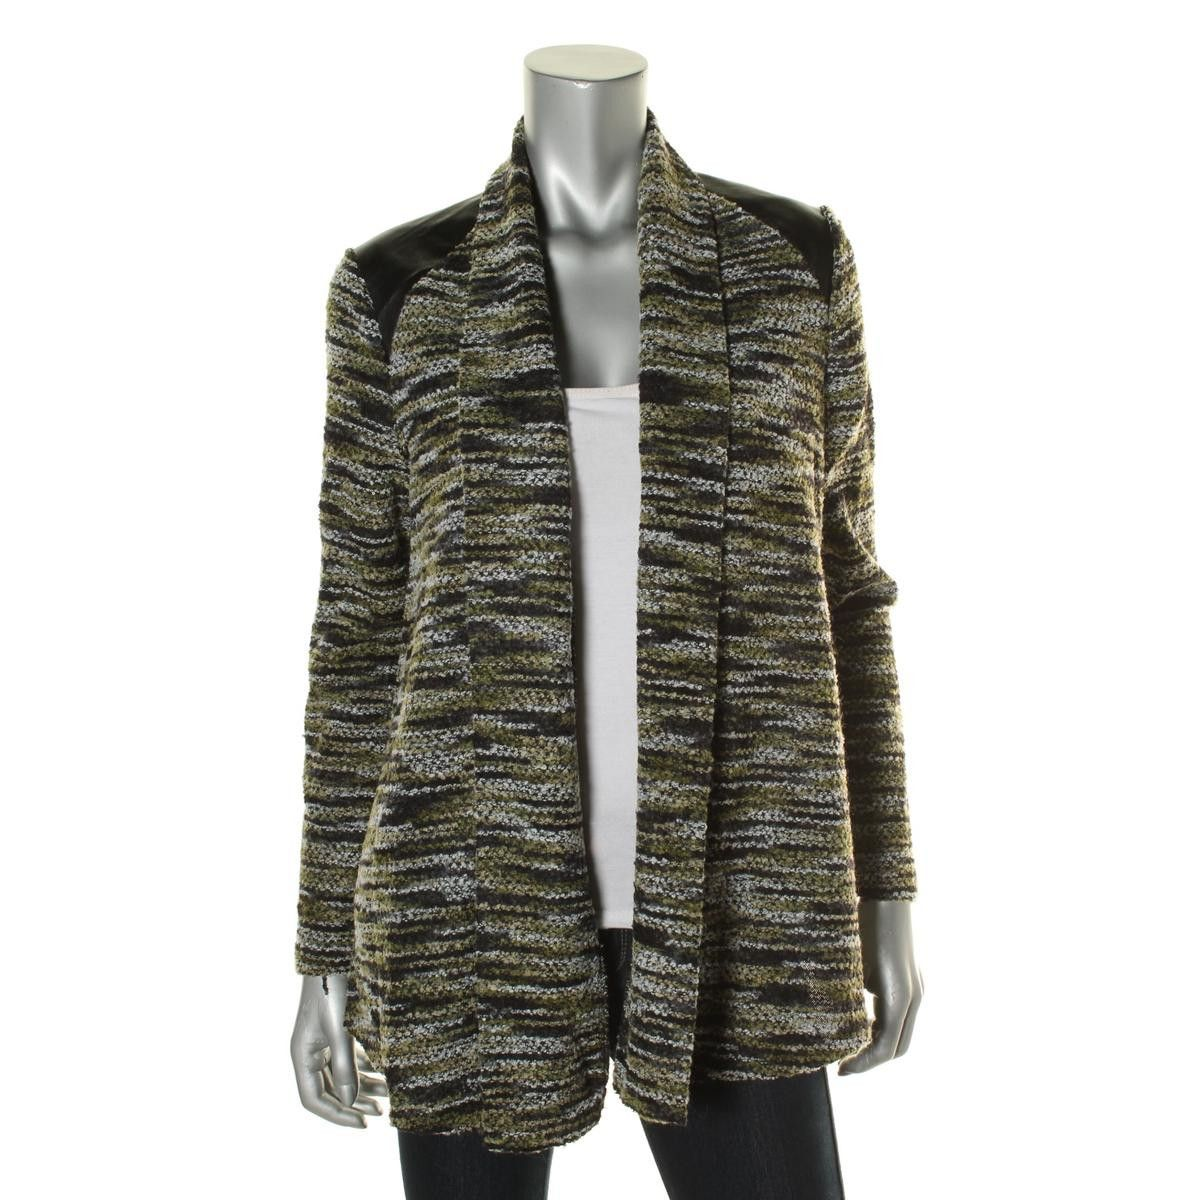 ECI Womens Knit Open Front Cardigan Sweater